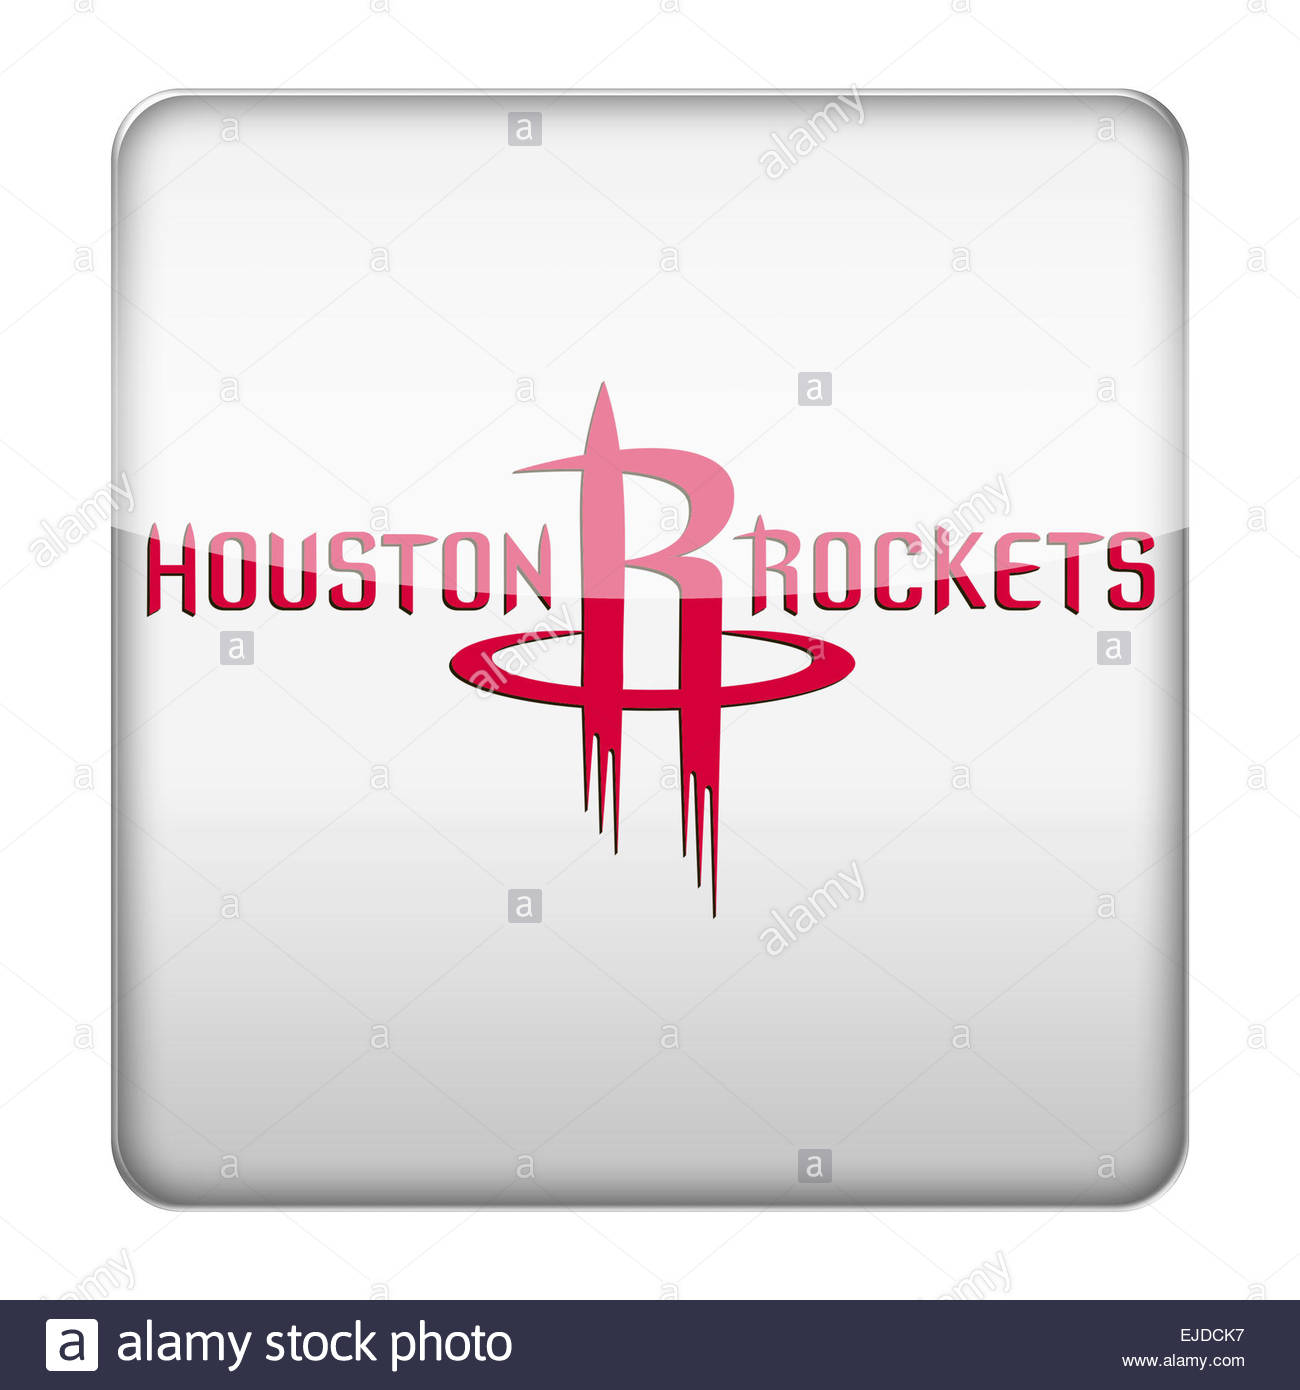 Houston Rockets logo icon - Stock Image